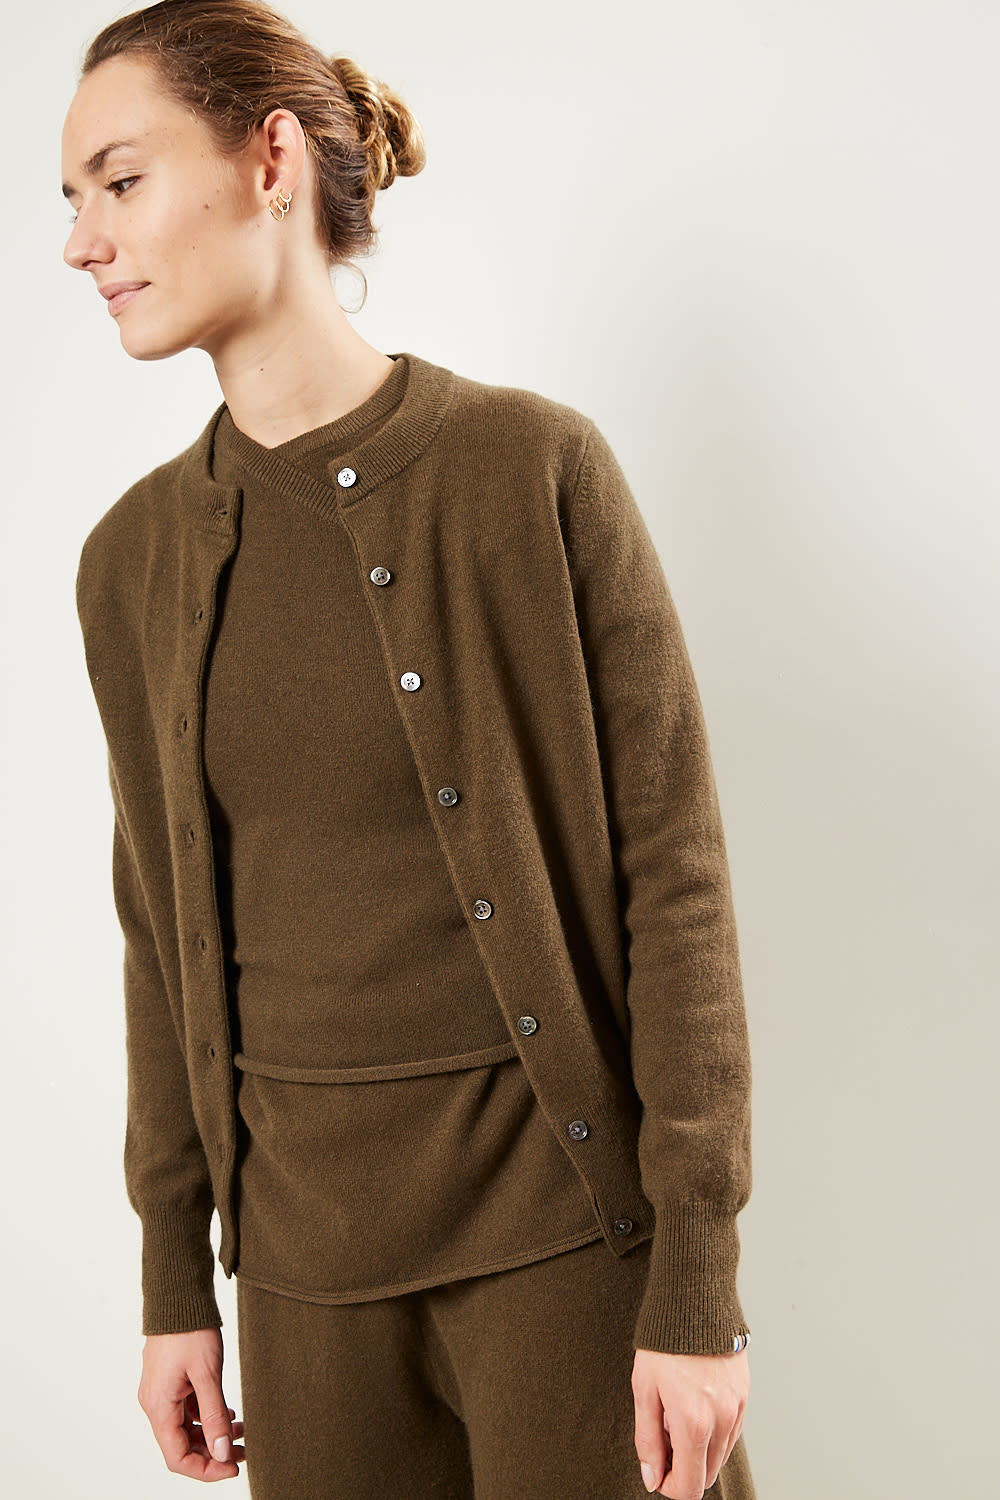 extreme cashmere - No99 little cardigan brown